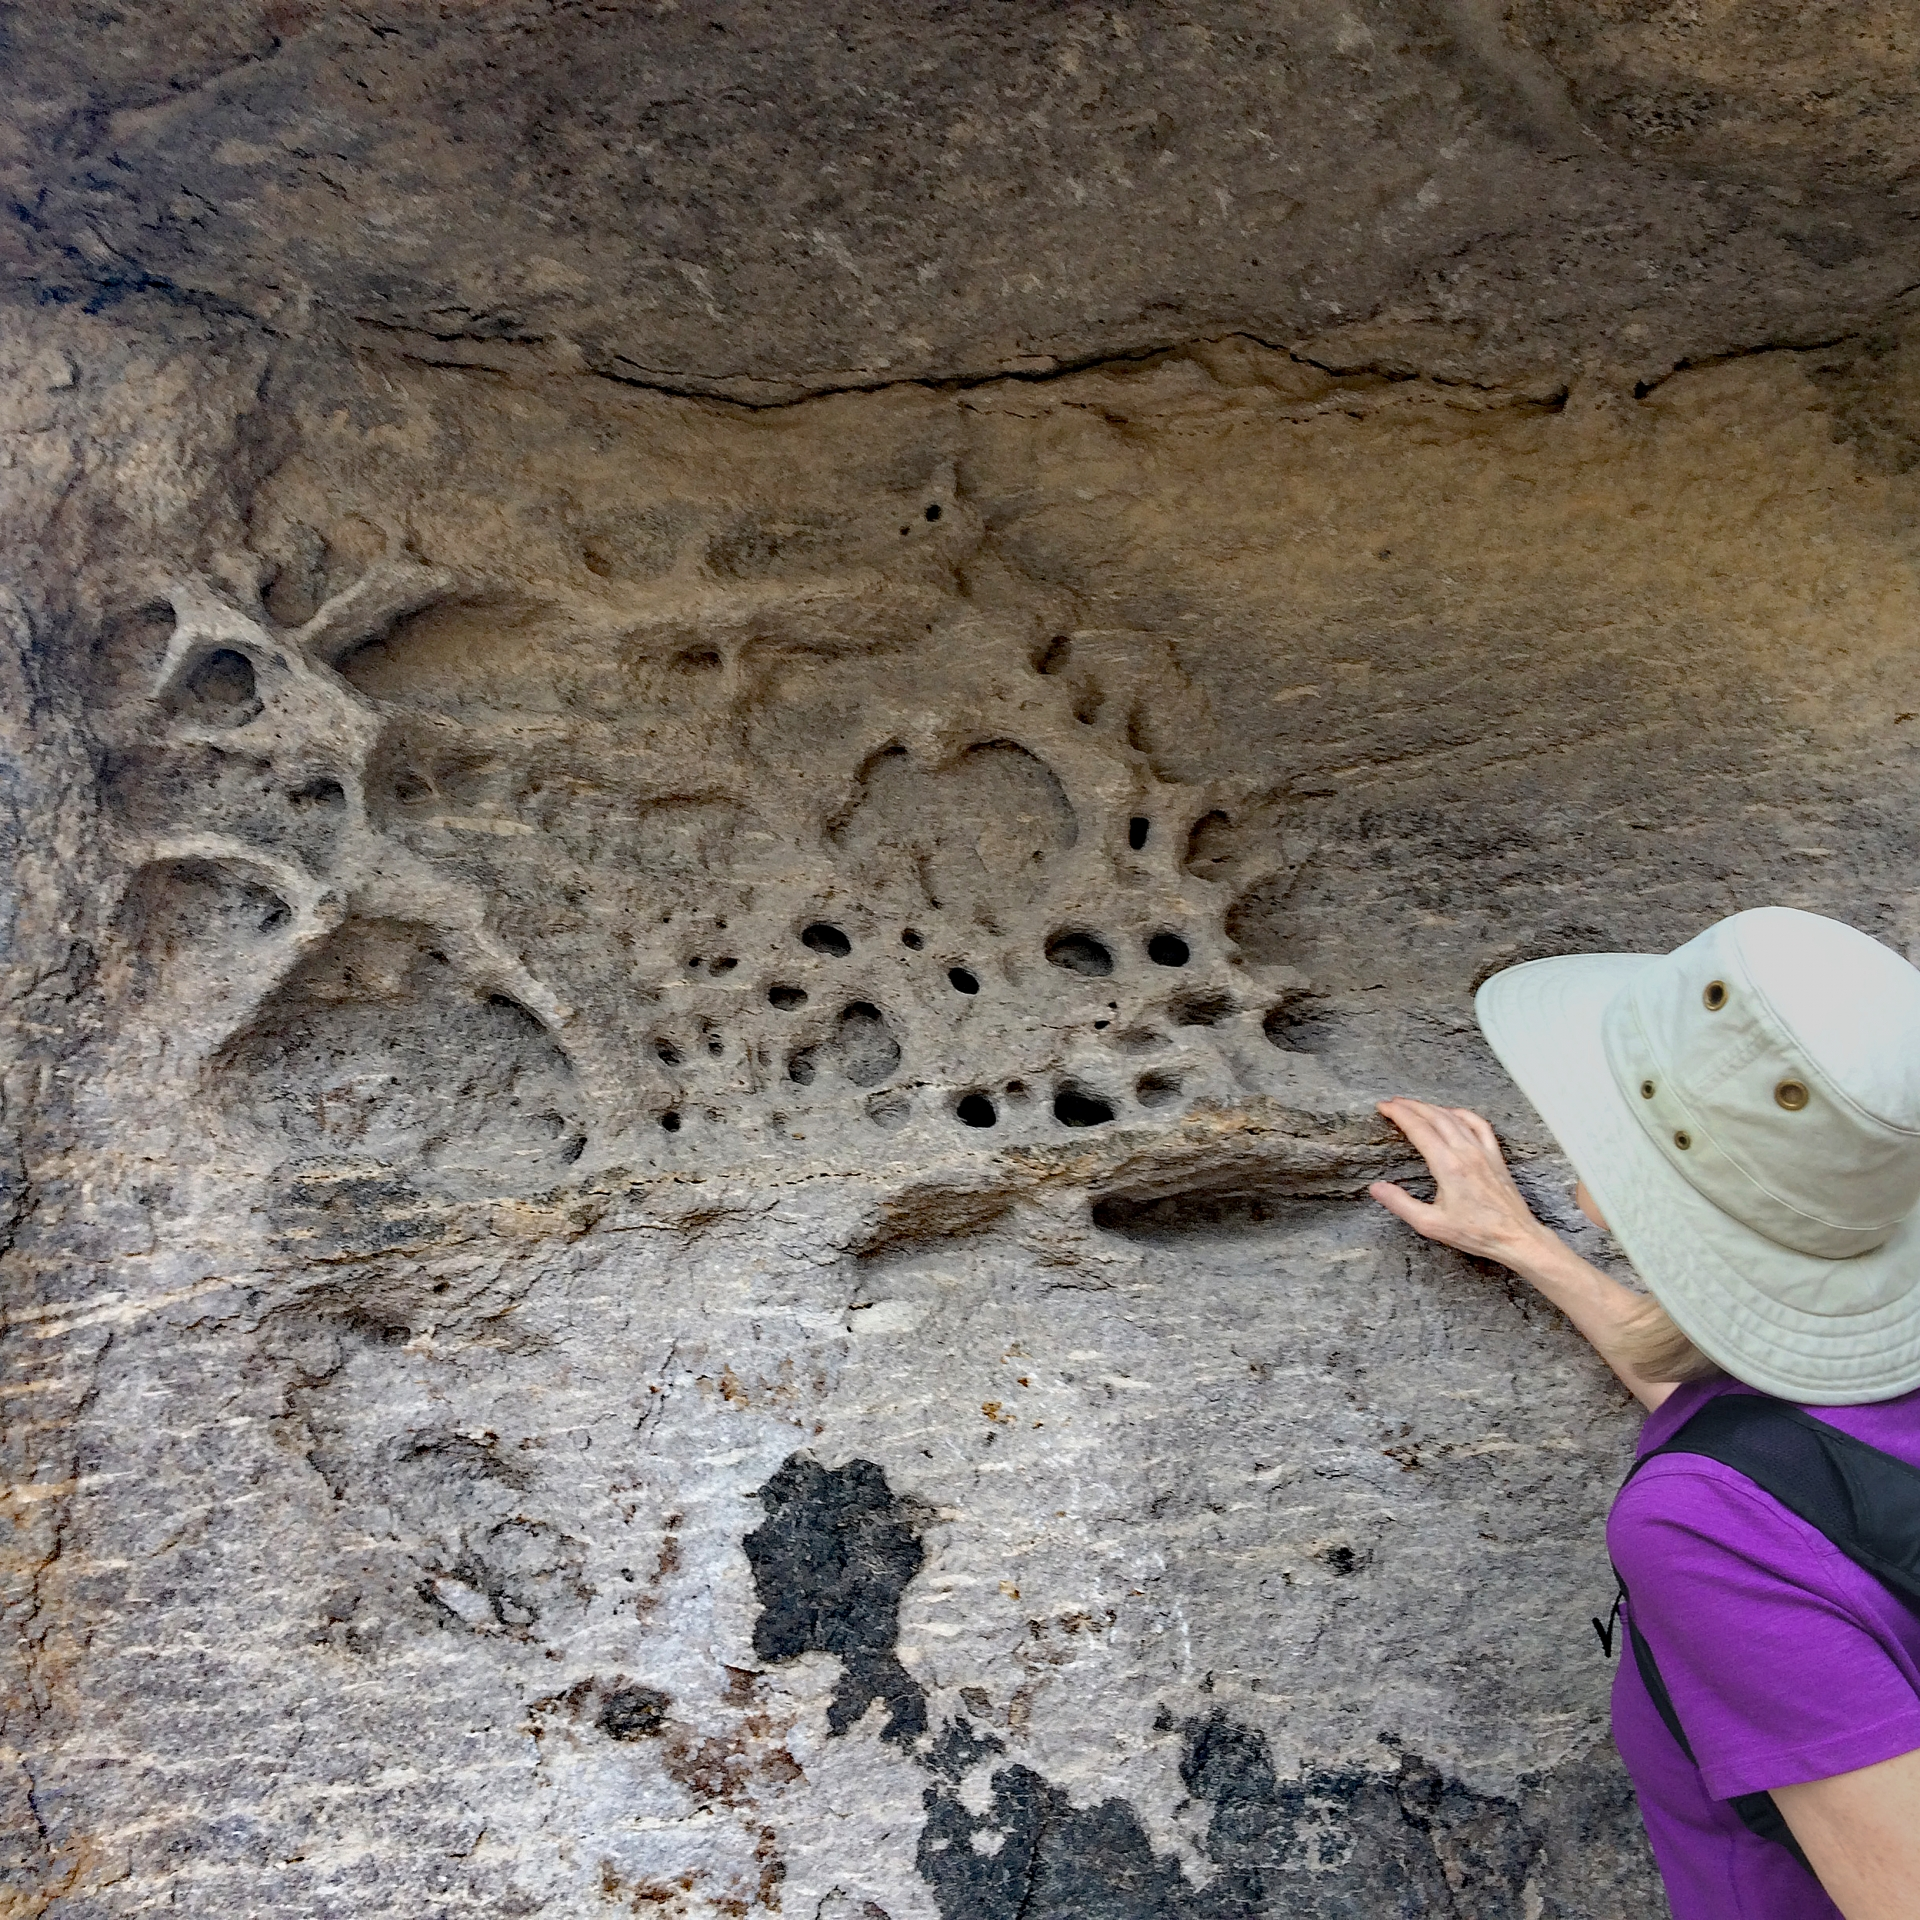 Woman looking at a close-up eroded rock formation